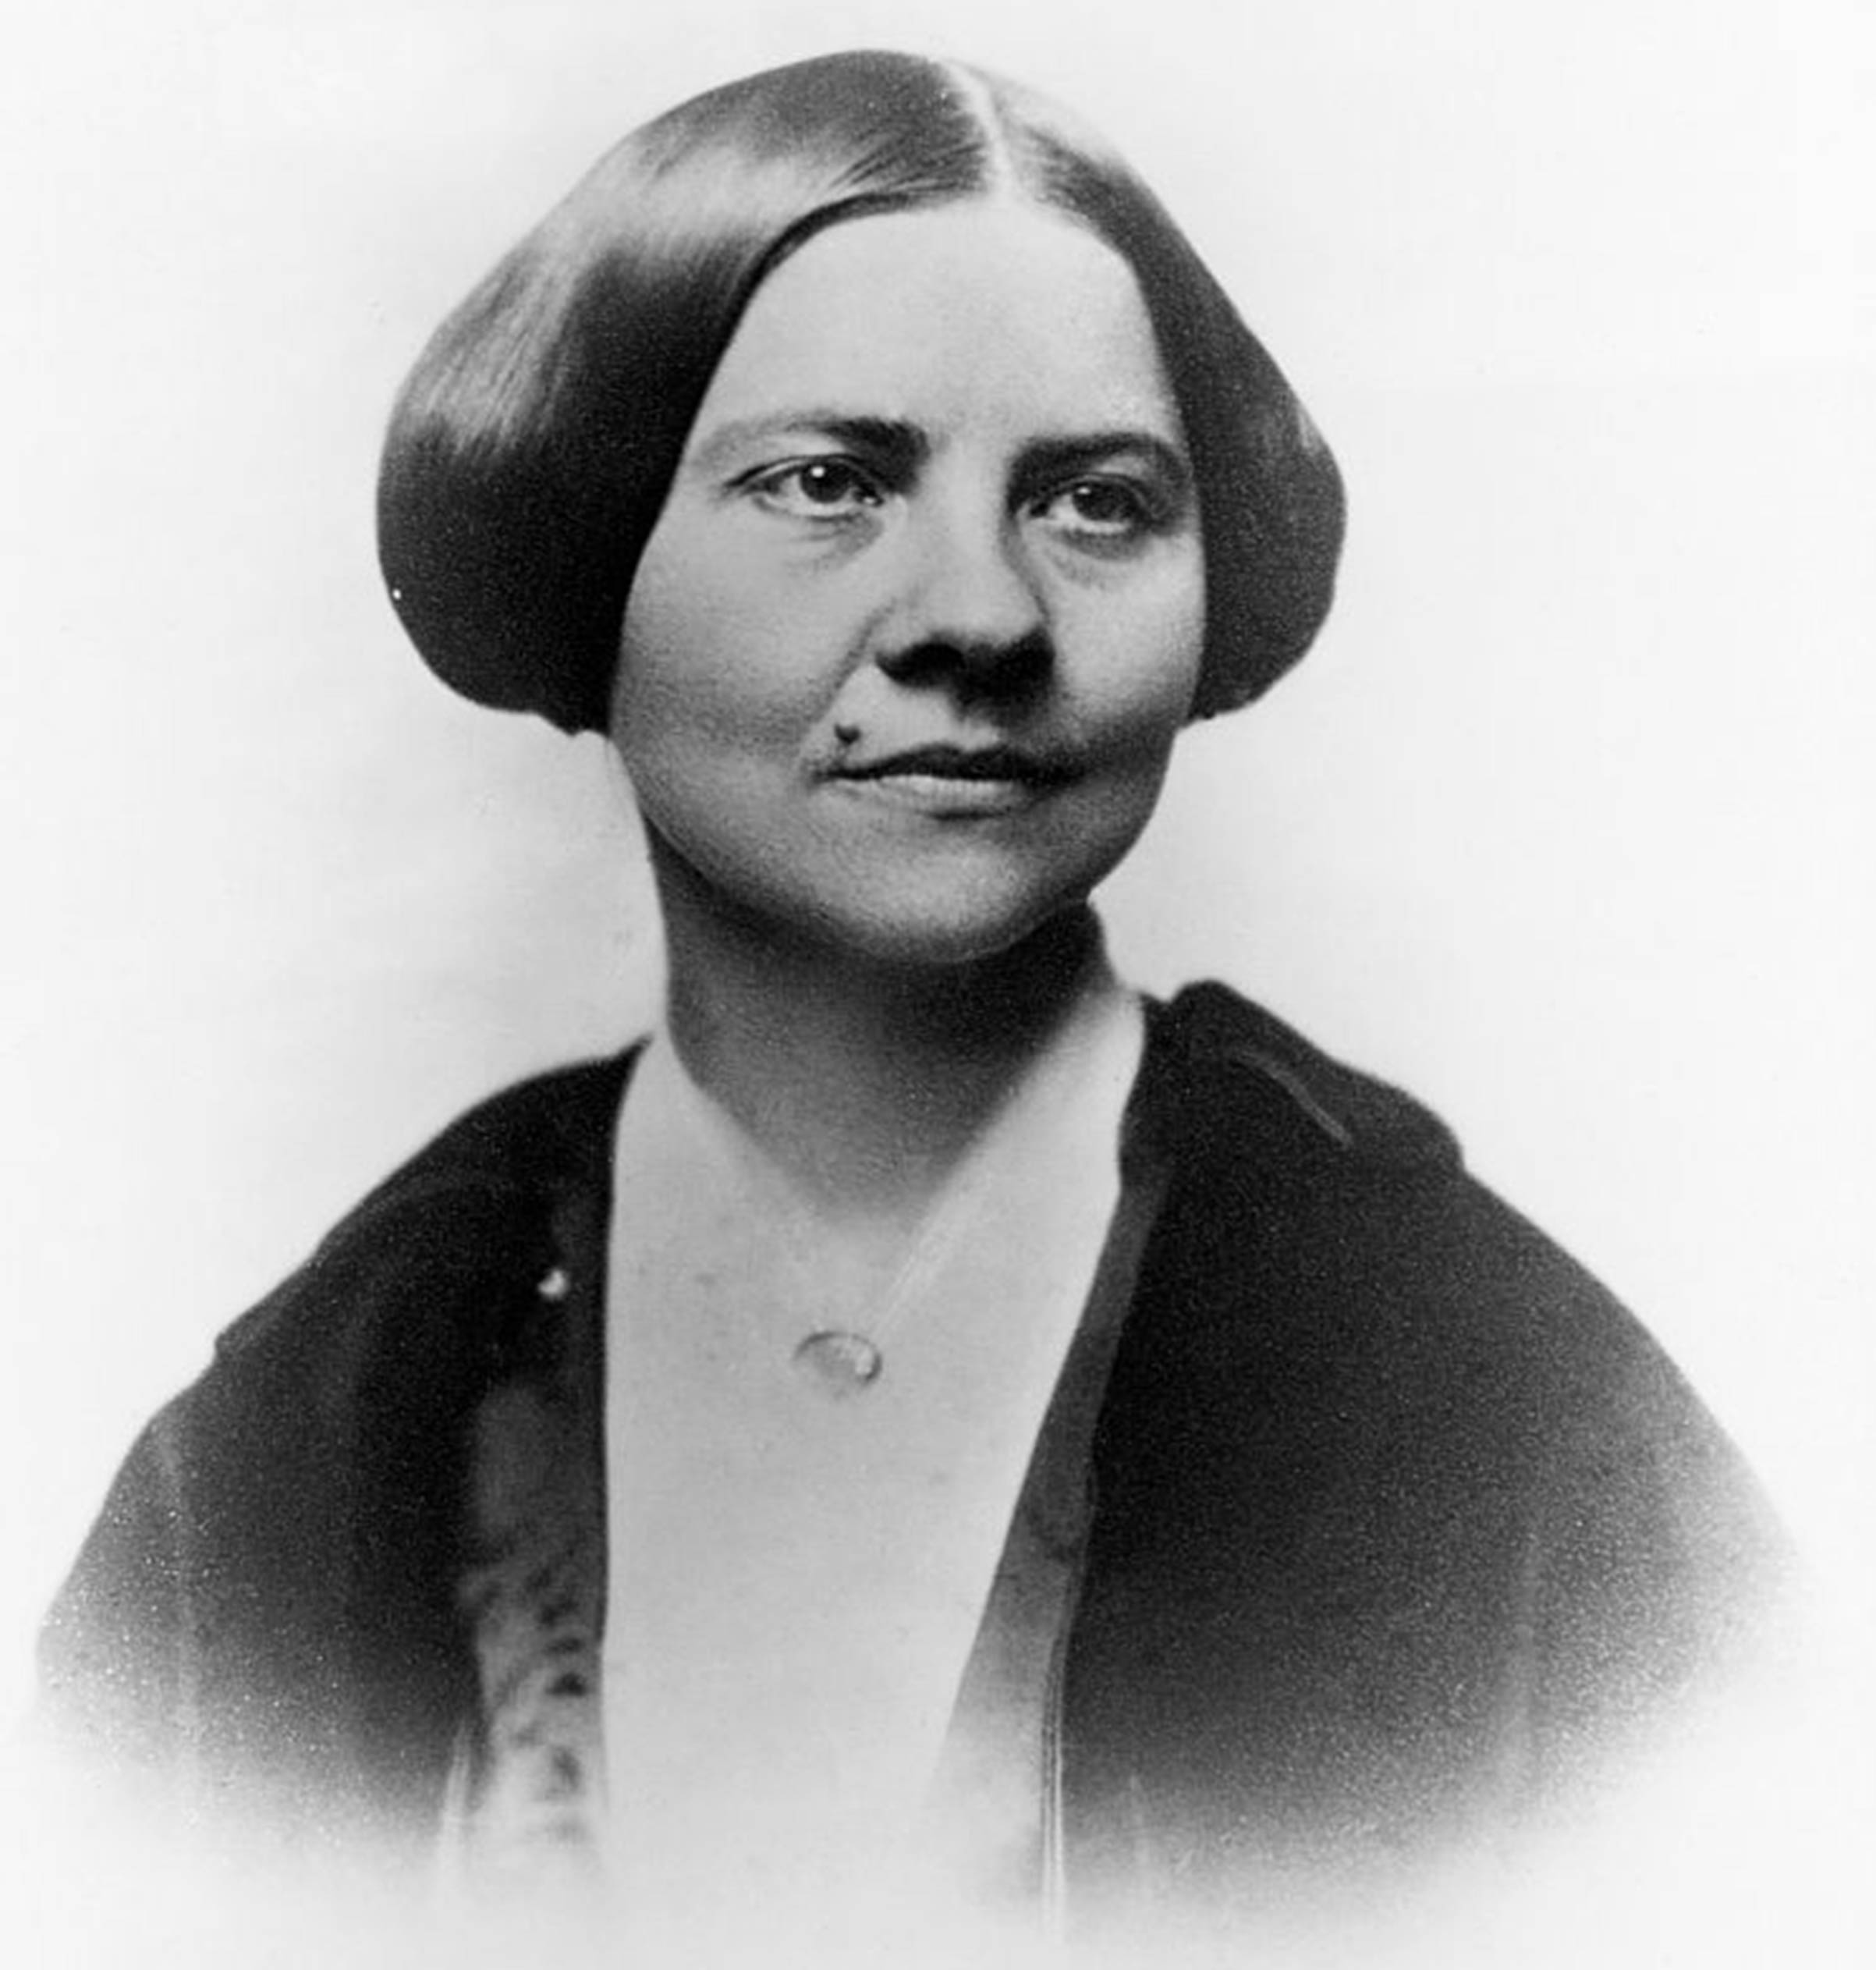 An undated photo of abolitionist and women's rights activist Lucy Stone